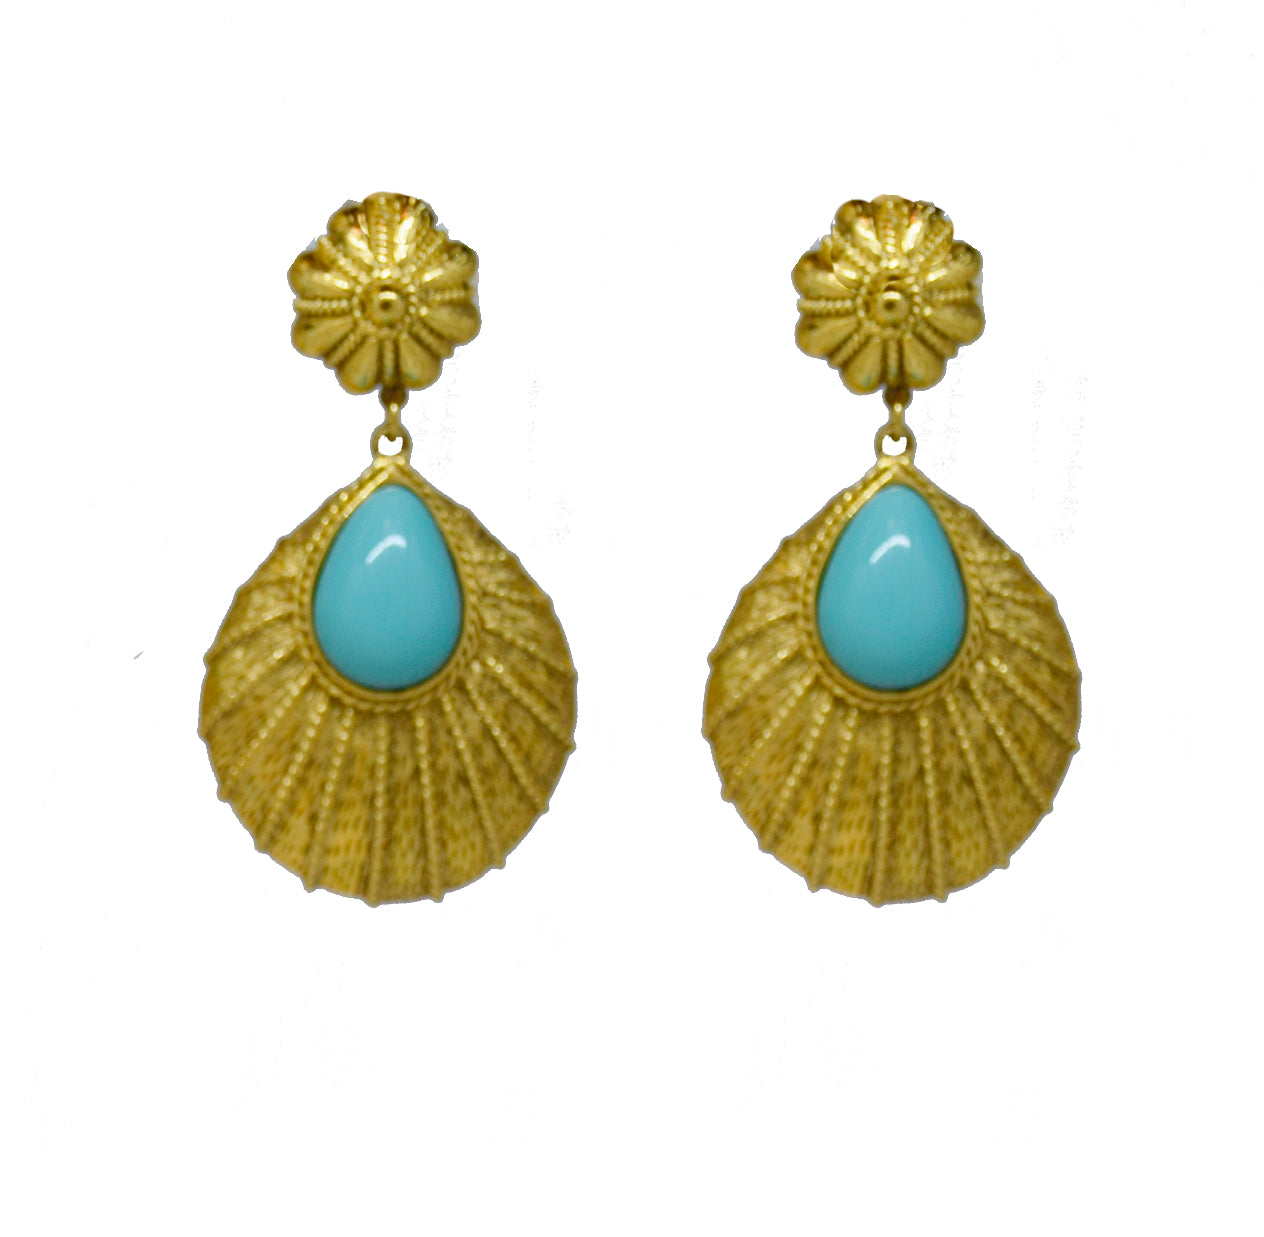 107 Textured 24 kt gold plated tear drop clip earring with turquoise stone